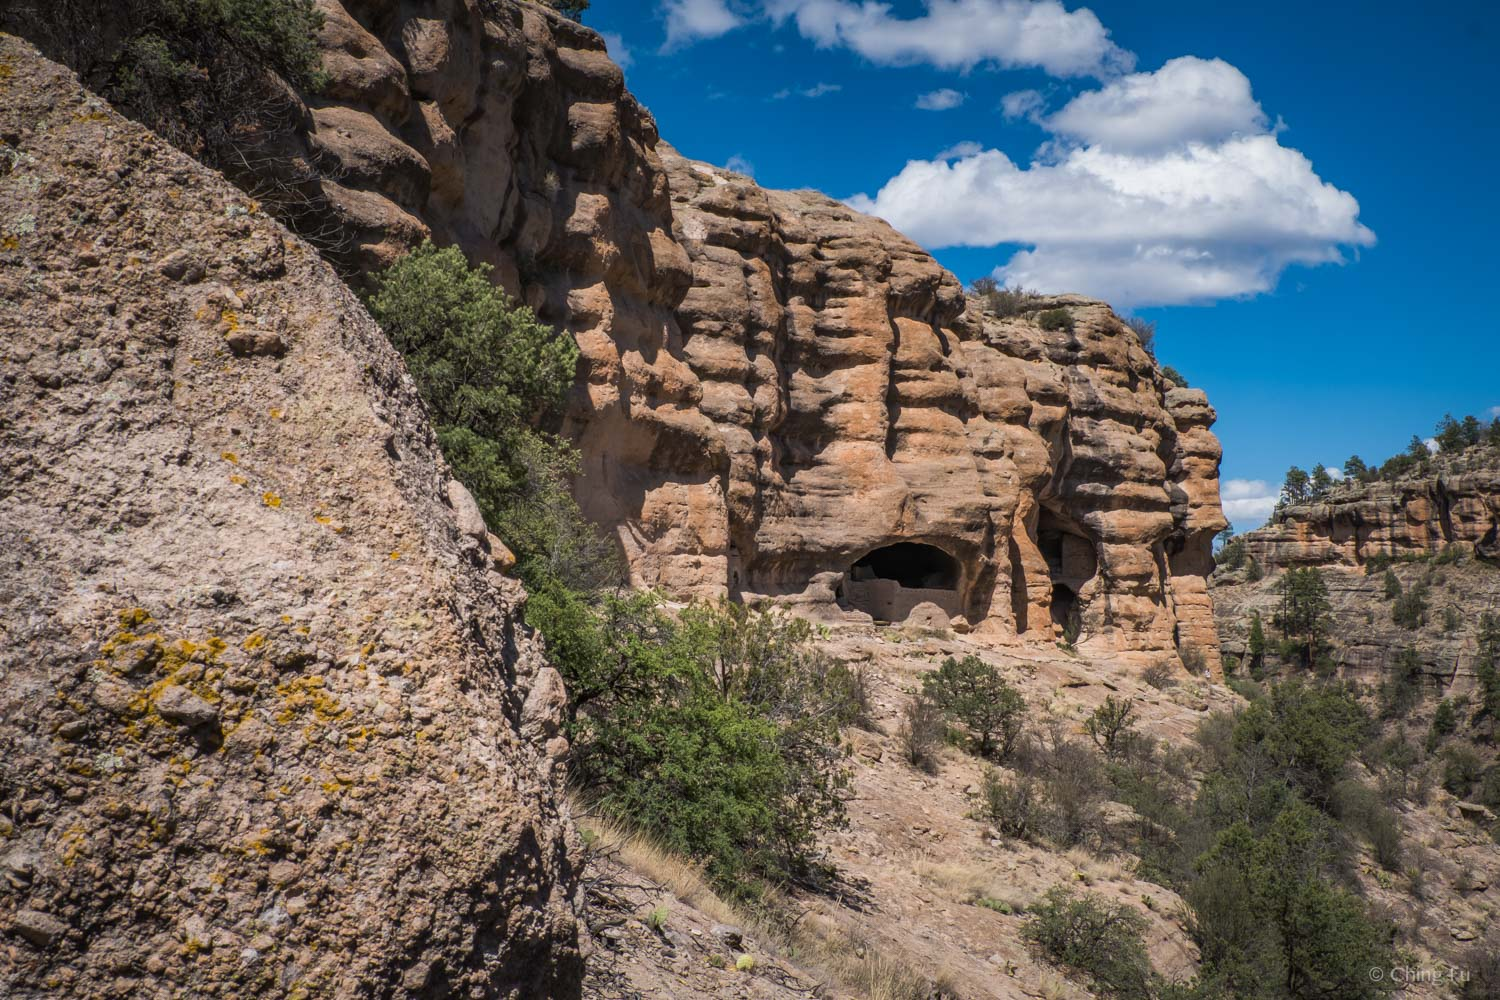 Glimpse of the cliff dwellings as we hiked up.